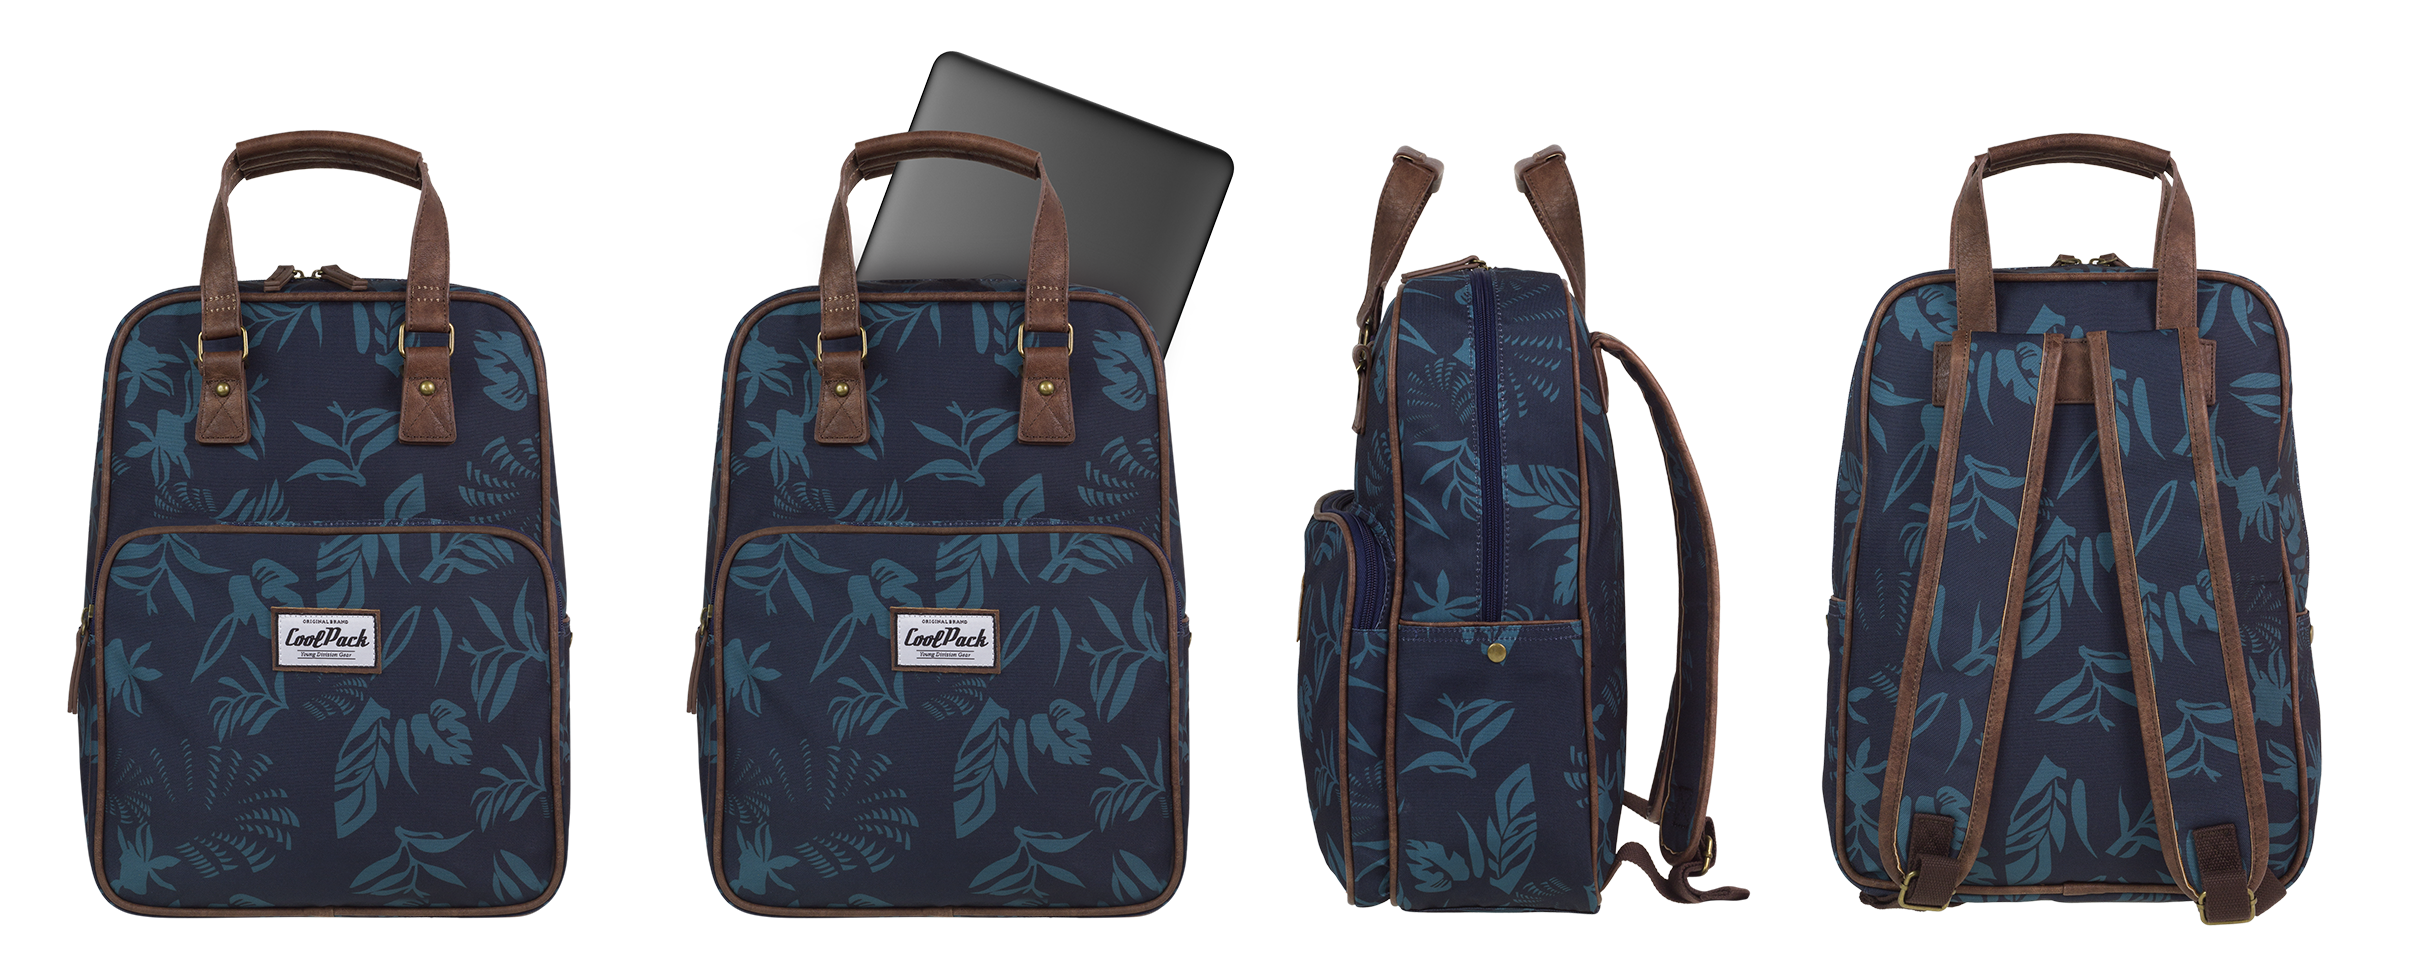 Coolpack - cubic - youth backpack - a087 - vintage